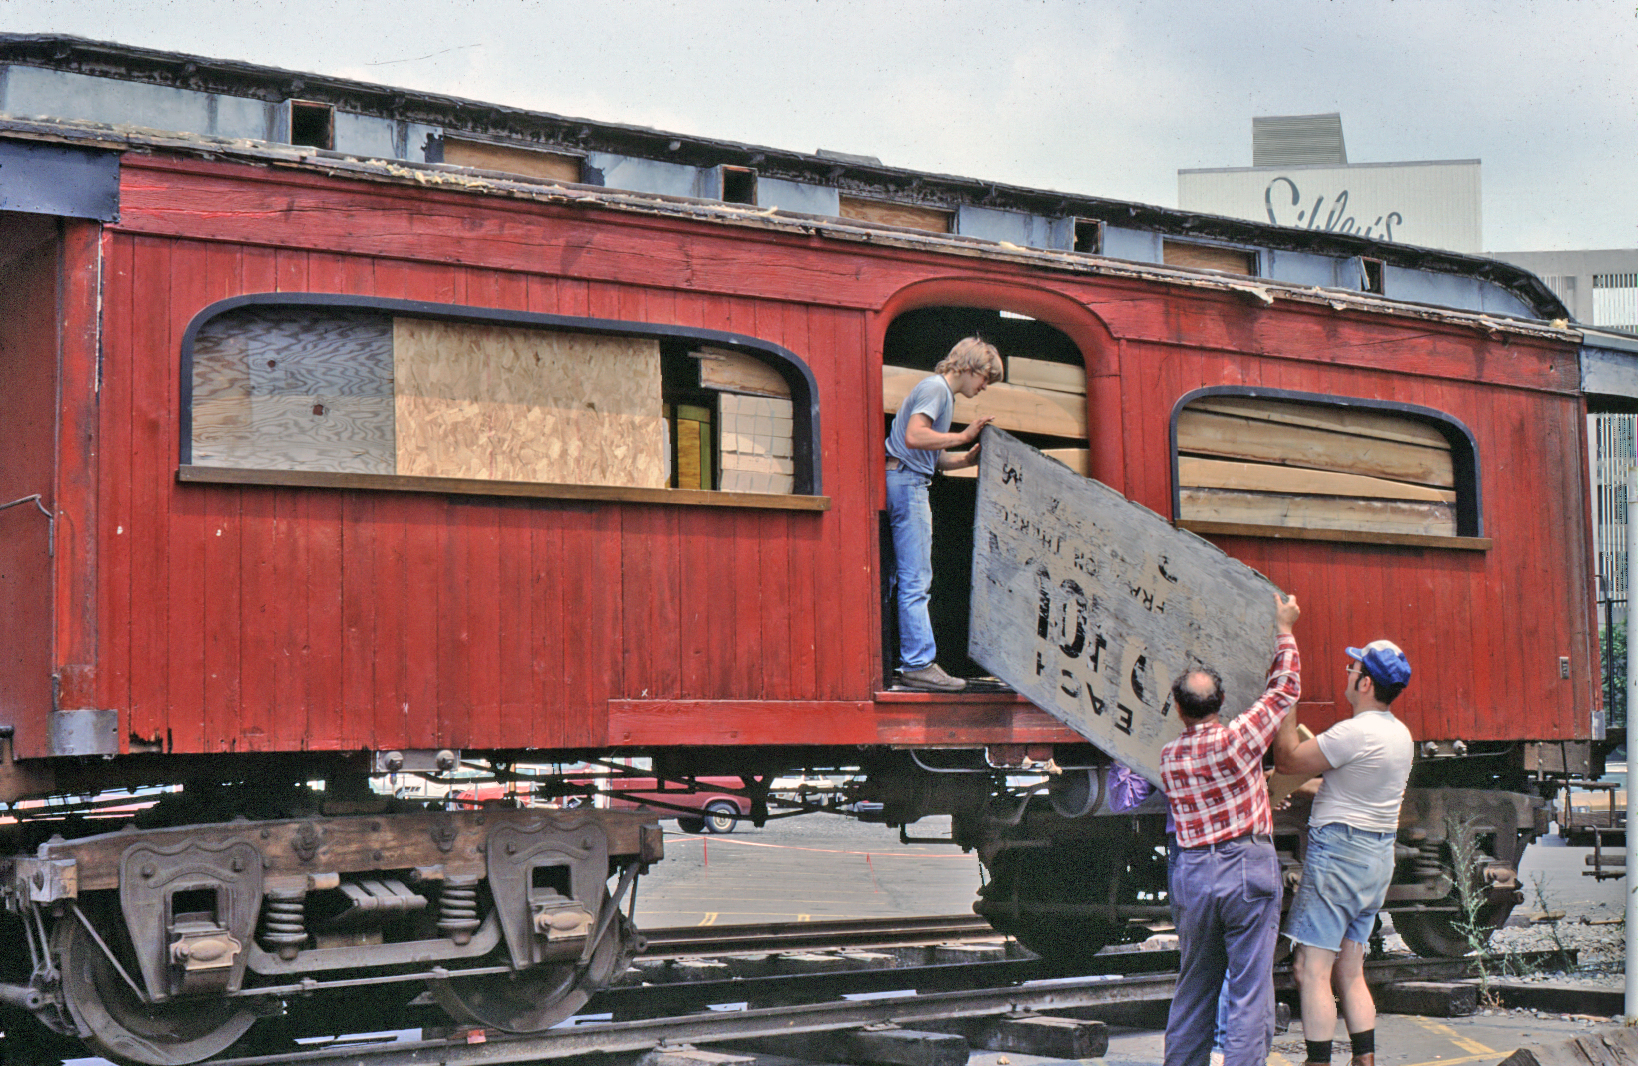 CNY NRHS members prepare baggage car for moving in July, 1984